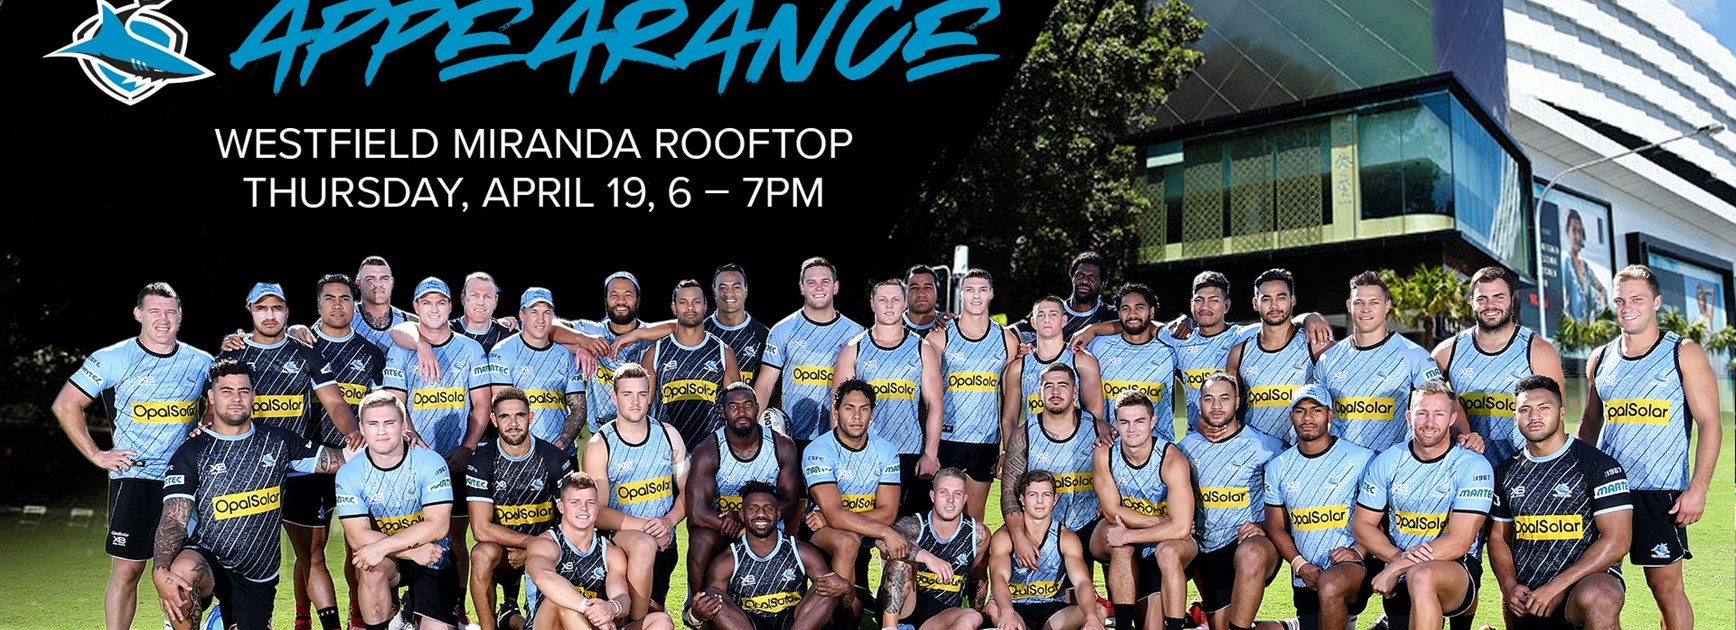 Meet the Sharks at Westfield